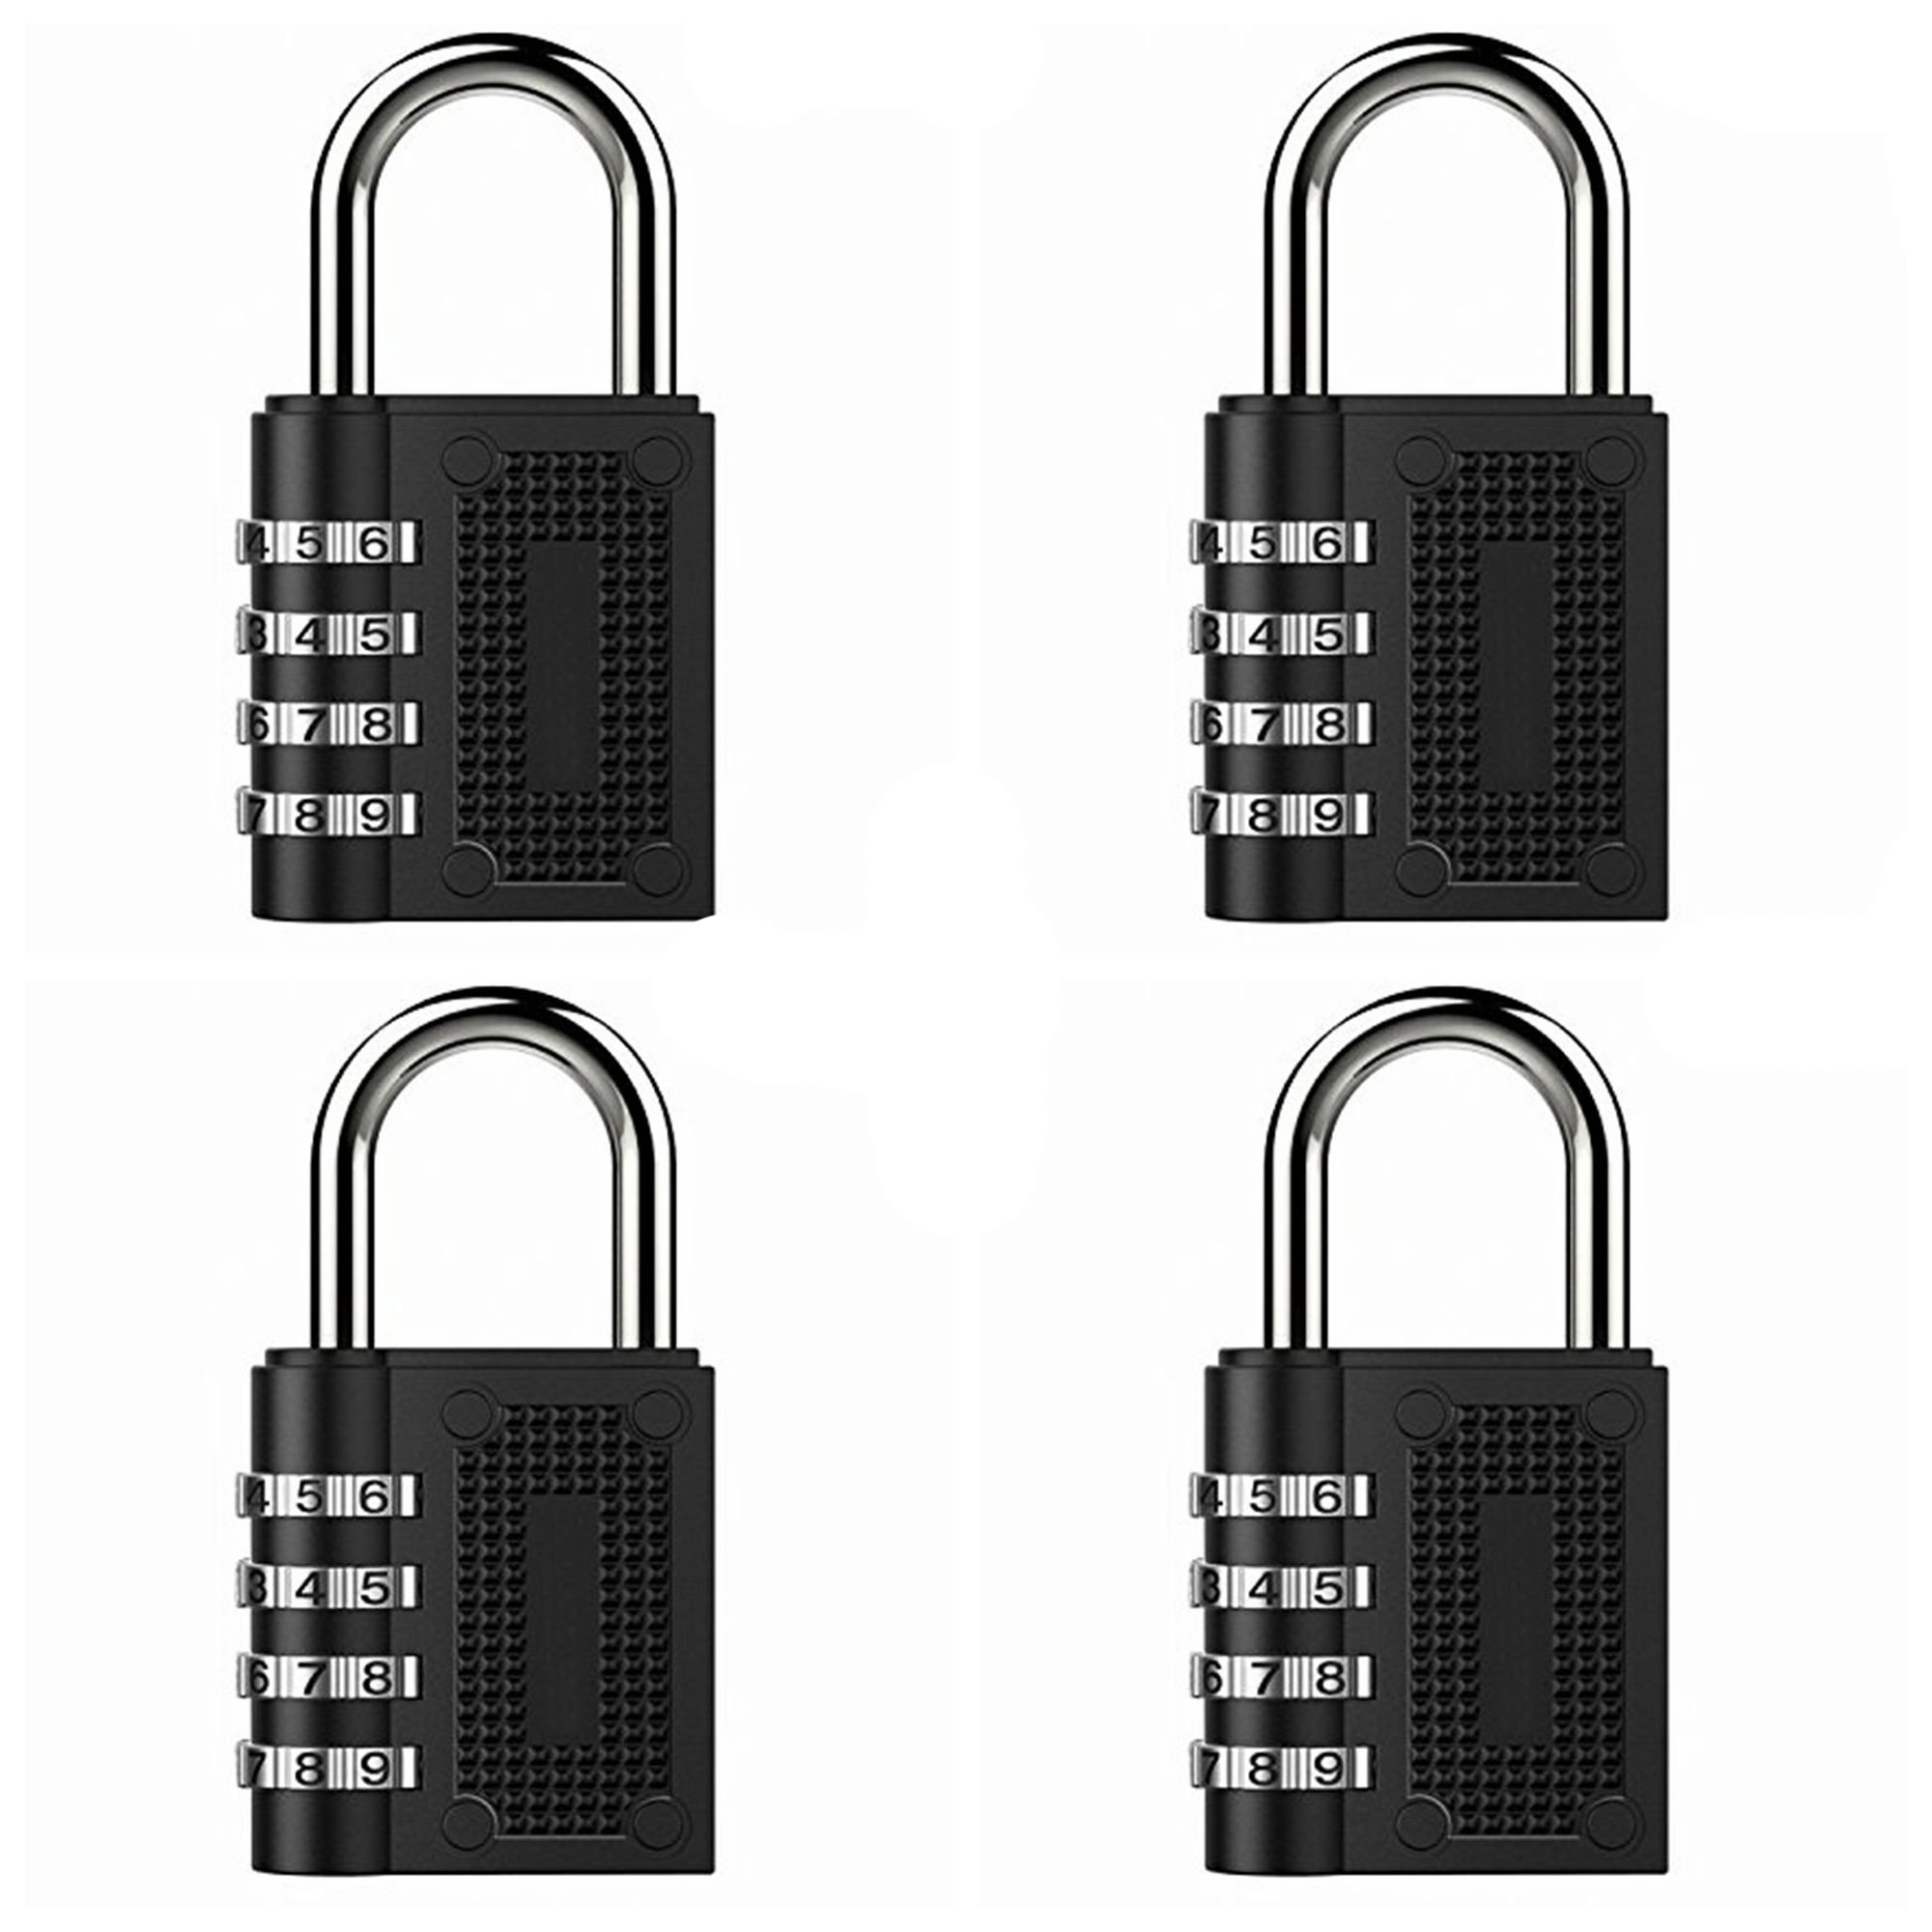 Eilin 4 Pack Combination Lock, Suitable for School、Home、Office、Storage Lockers、Gym Lockers、Drawers、Cabinets、Toolboxes、Luggage Suitcase Baggage Locks, Set Your Own Combination